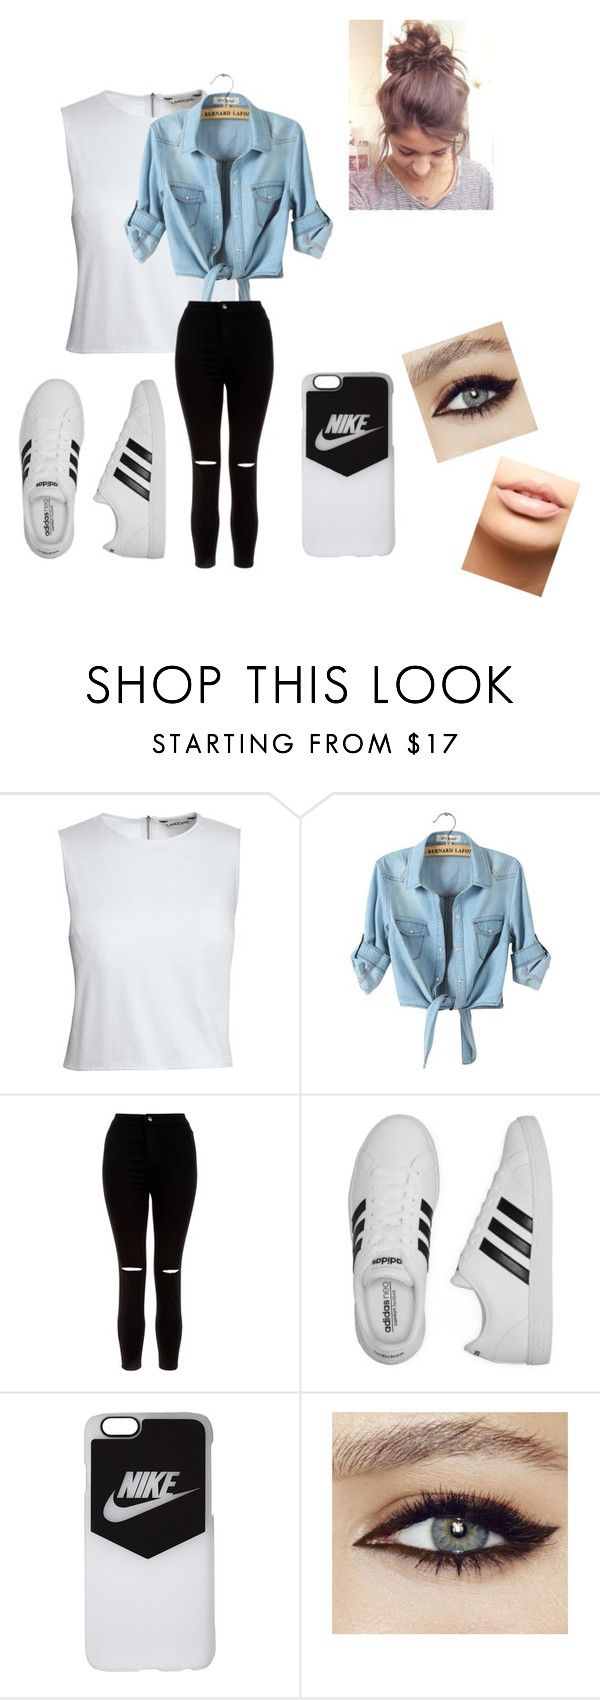 """outfit for school"" by ayel-nueva on Polyvore featuring Canvas by Lands' End, New Look, adidas, NIKE and MDMflow"